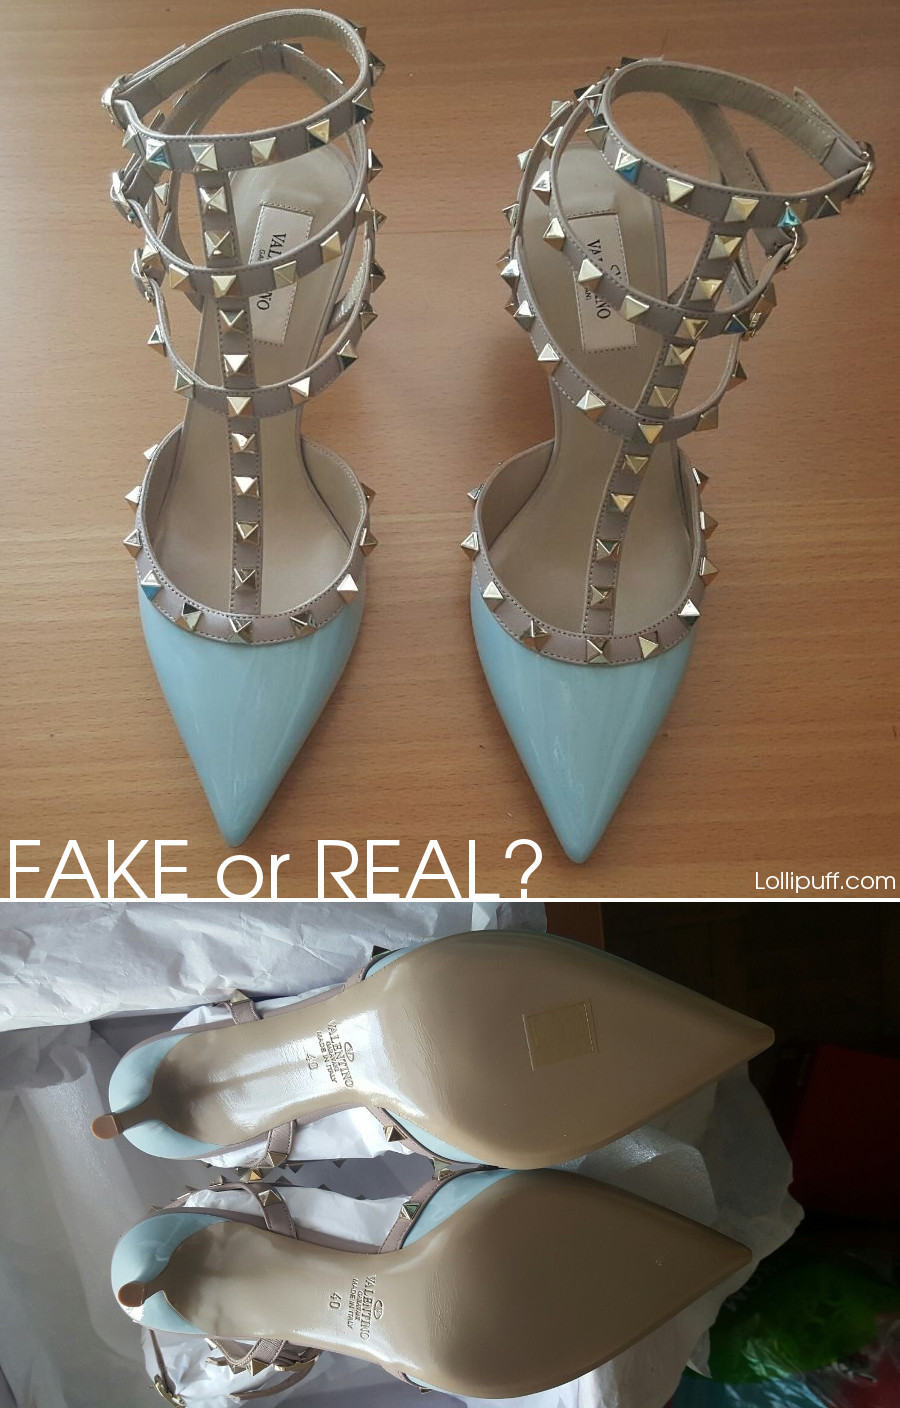 532deda36c28 Are these shoes authentic or fake   Authentic